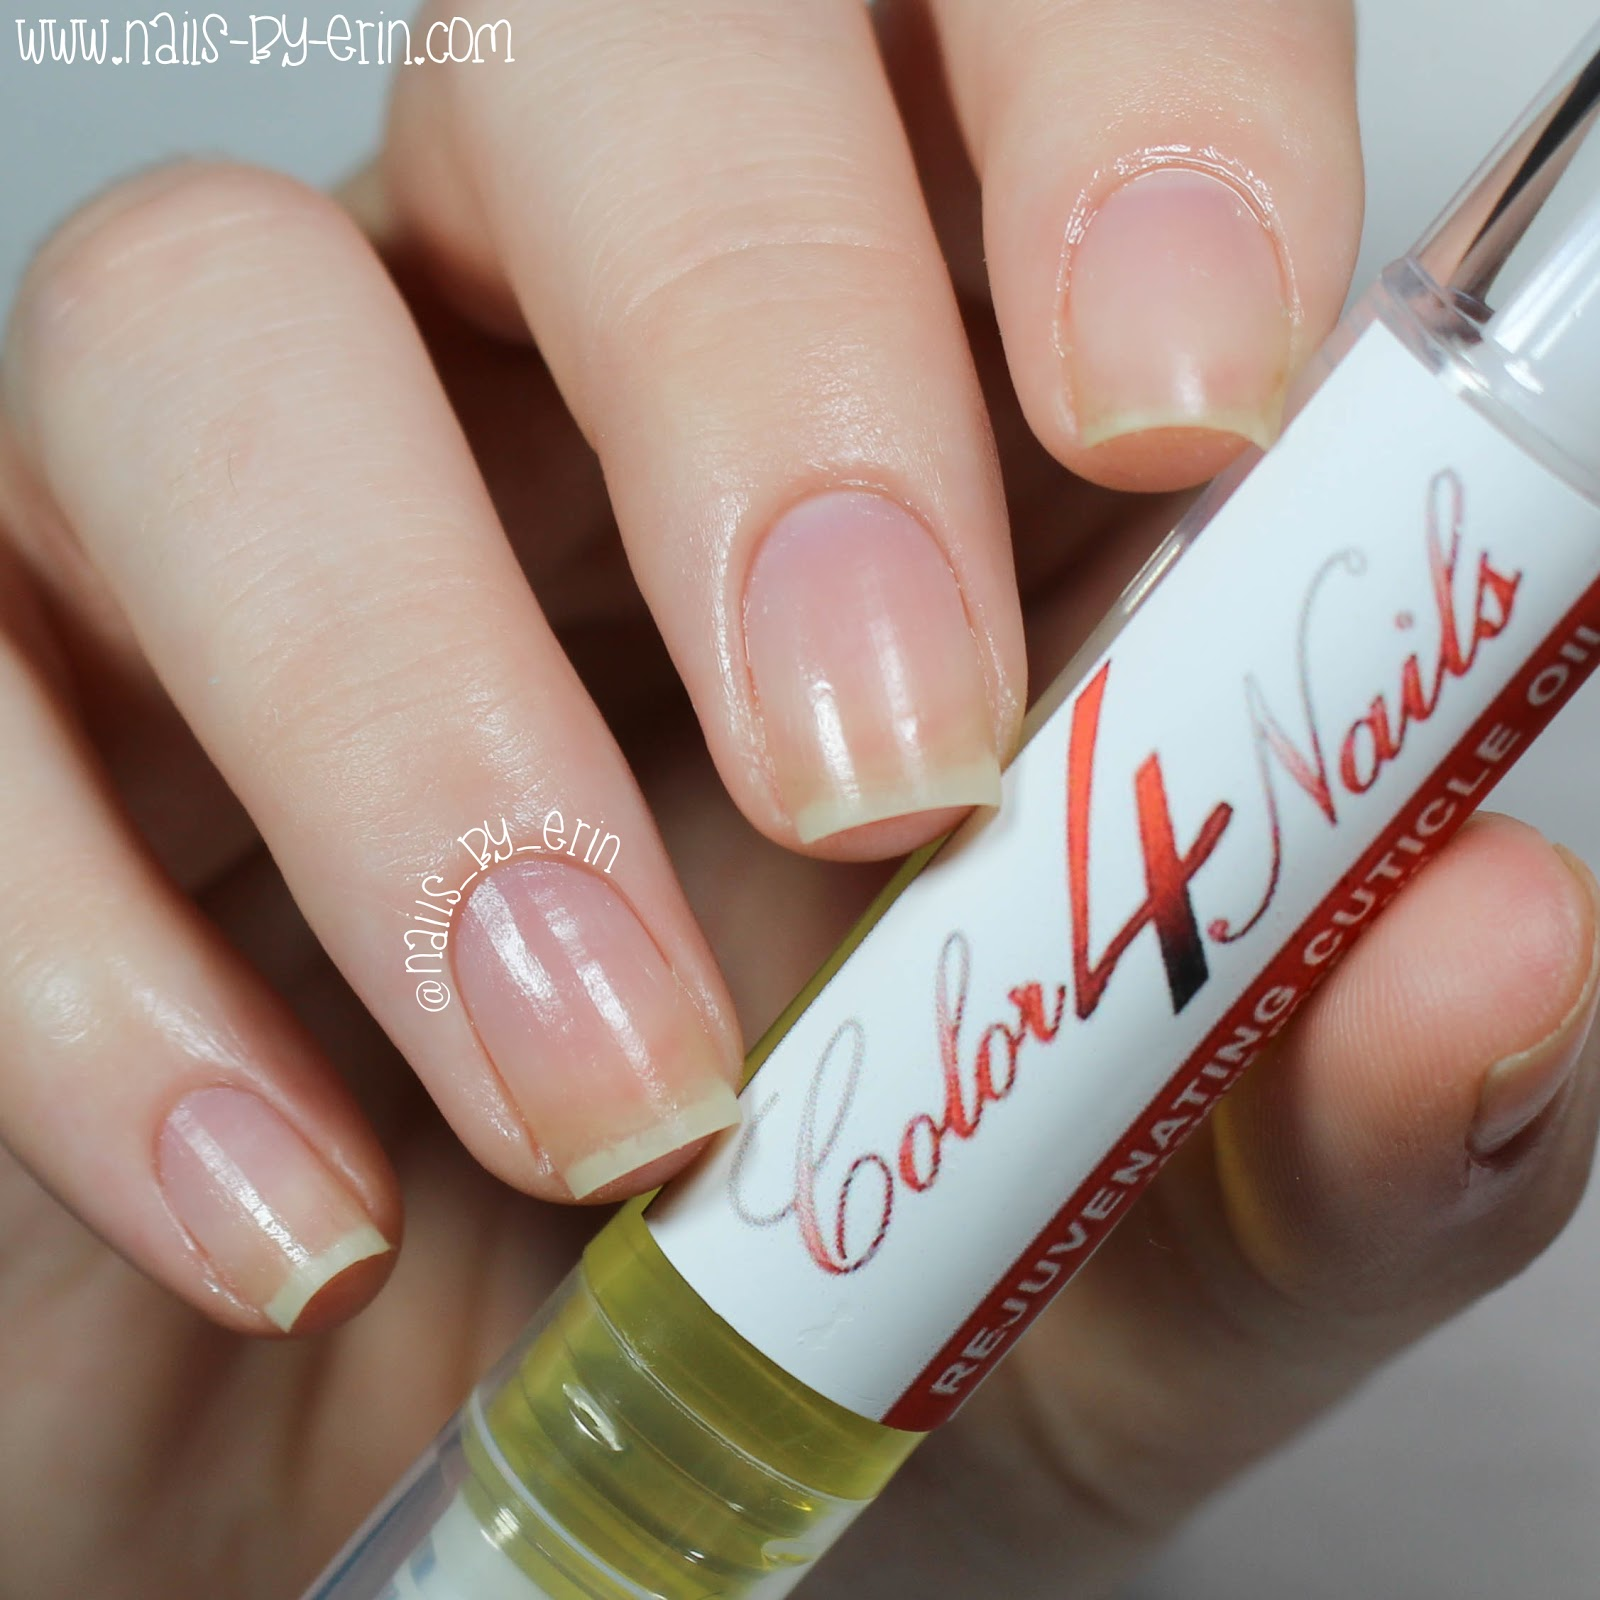 NailsByErin: Color4Nails Cuticle-Away and Cuticle Oils Review